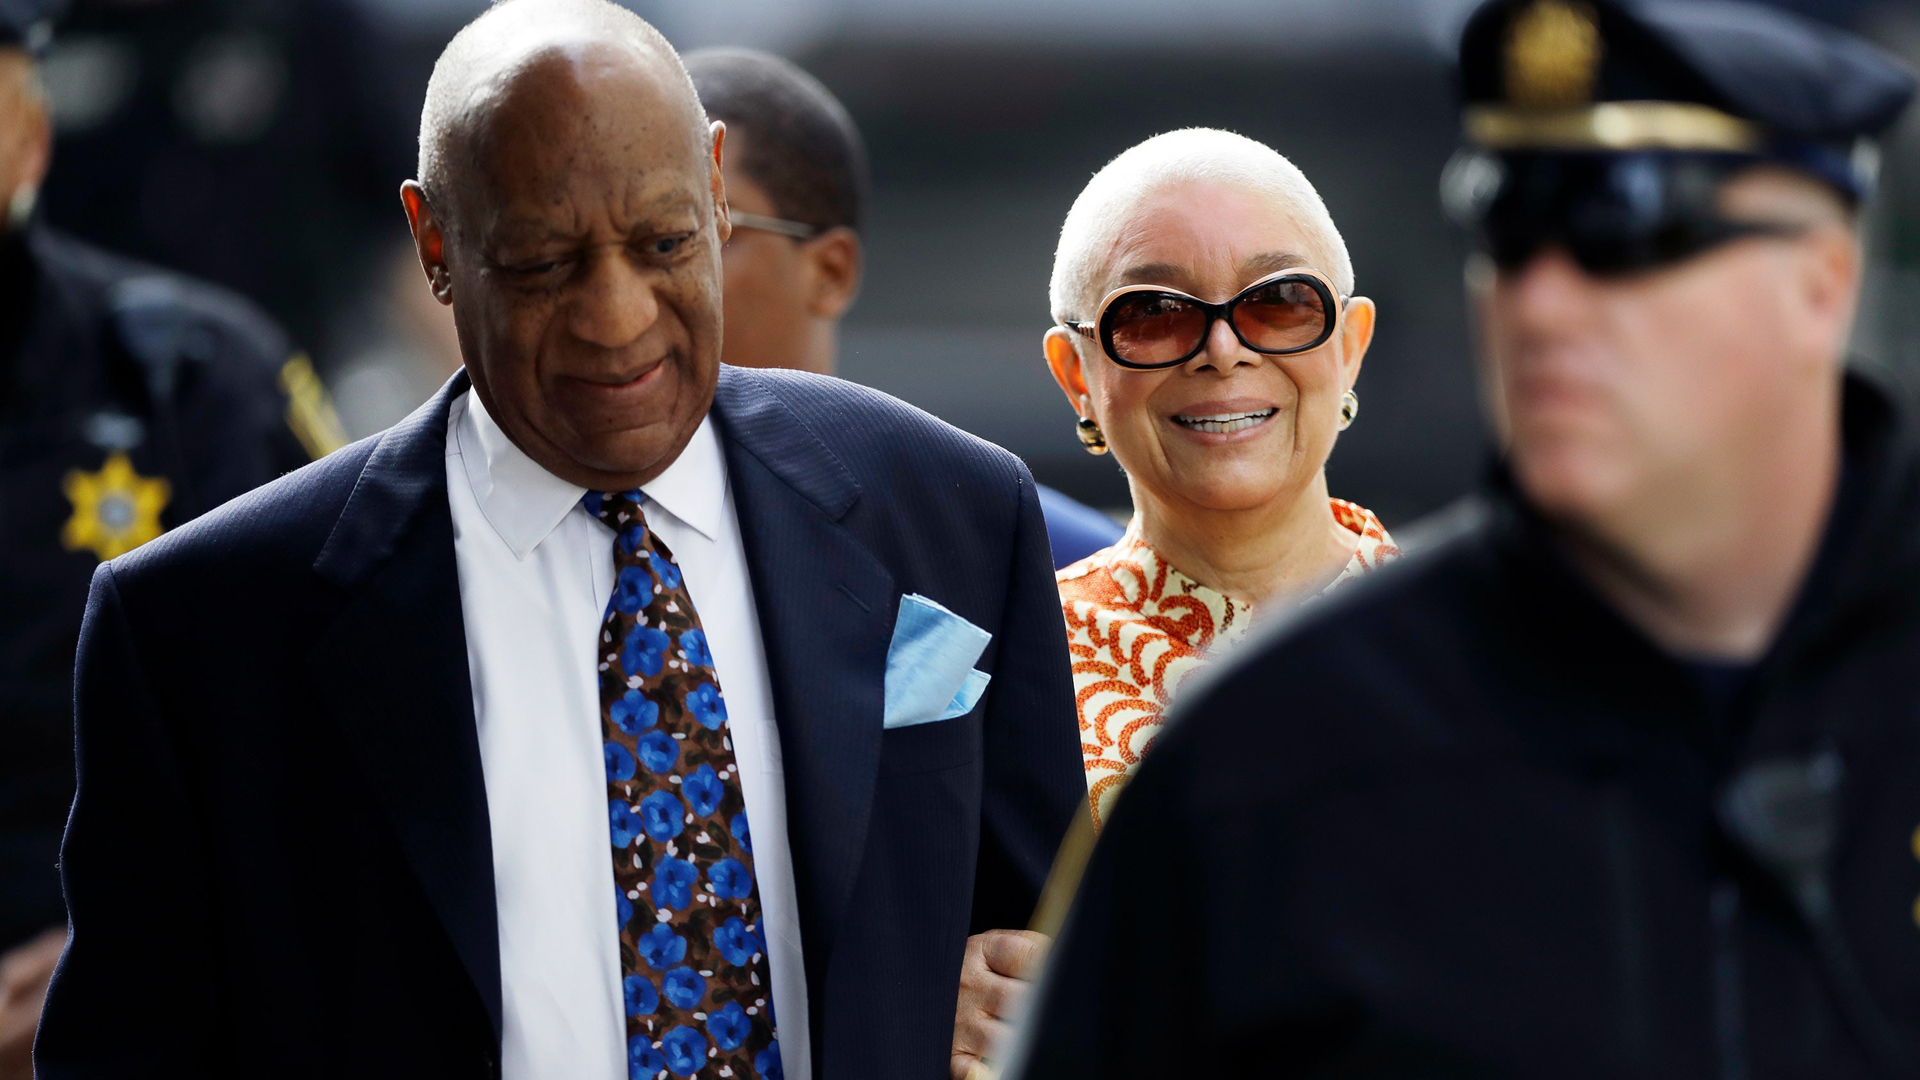 Bill Cosby's wife claimed in a statement Thursday that her husband's accuser gave false testimony during the trial that ended last week, and demanded an investigation of the district attorney. (Credit: Matt Slocum / Associated Press via CNN Wire)